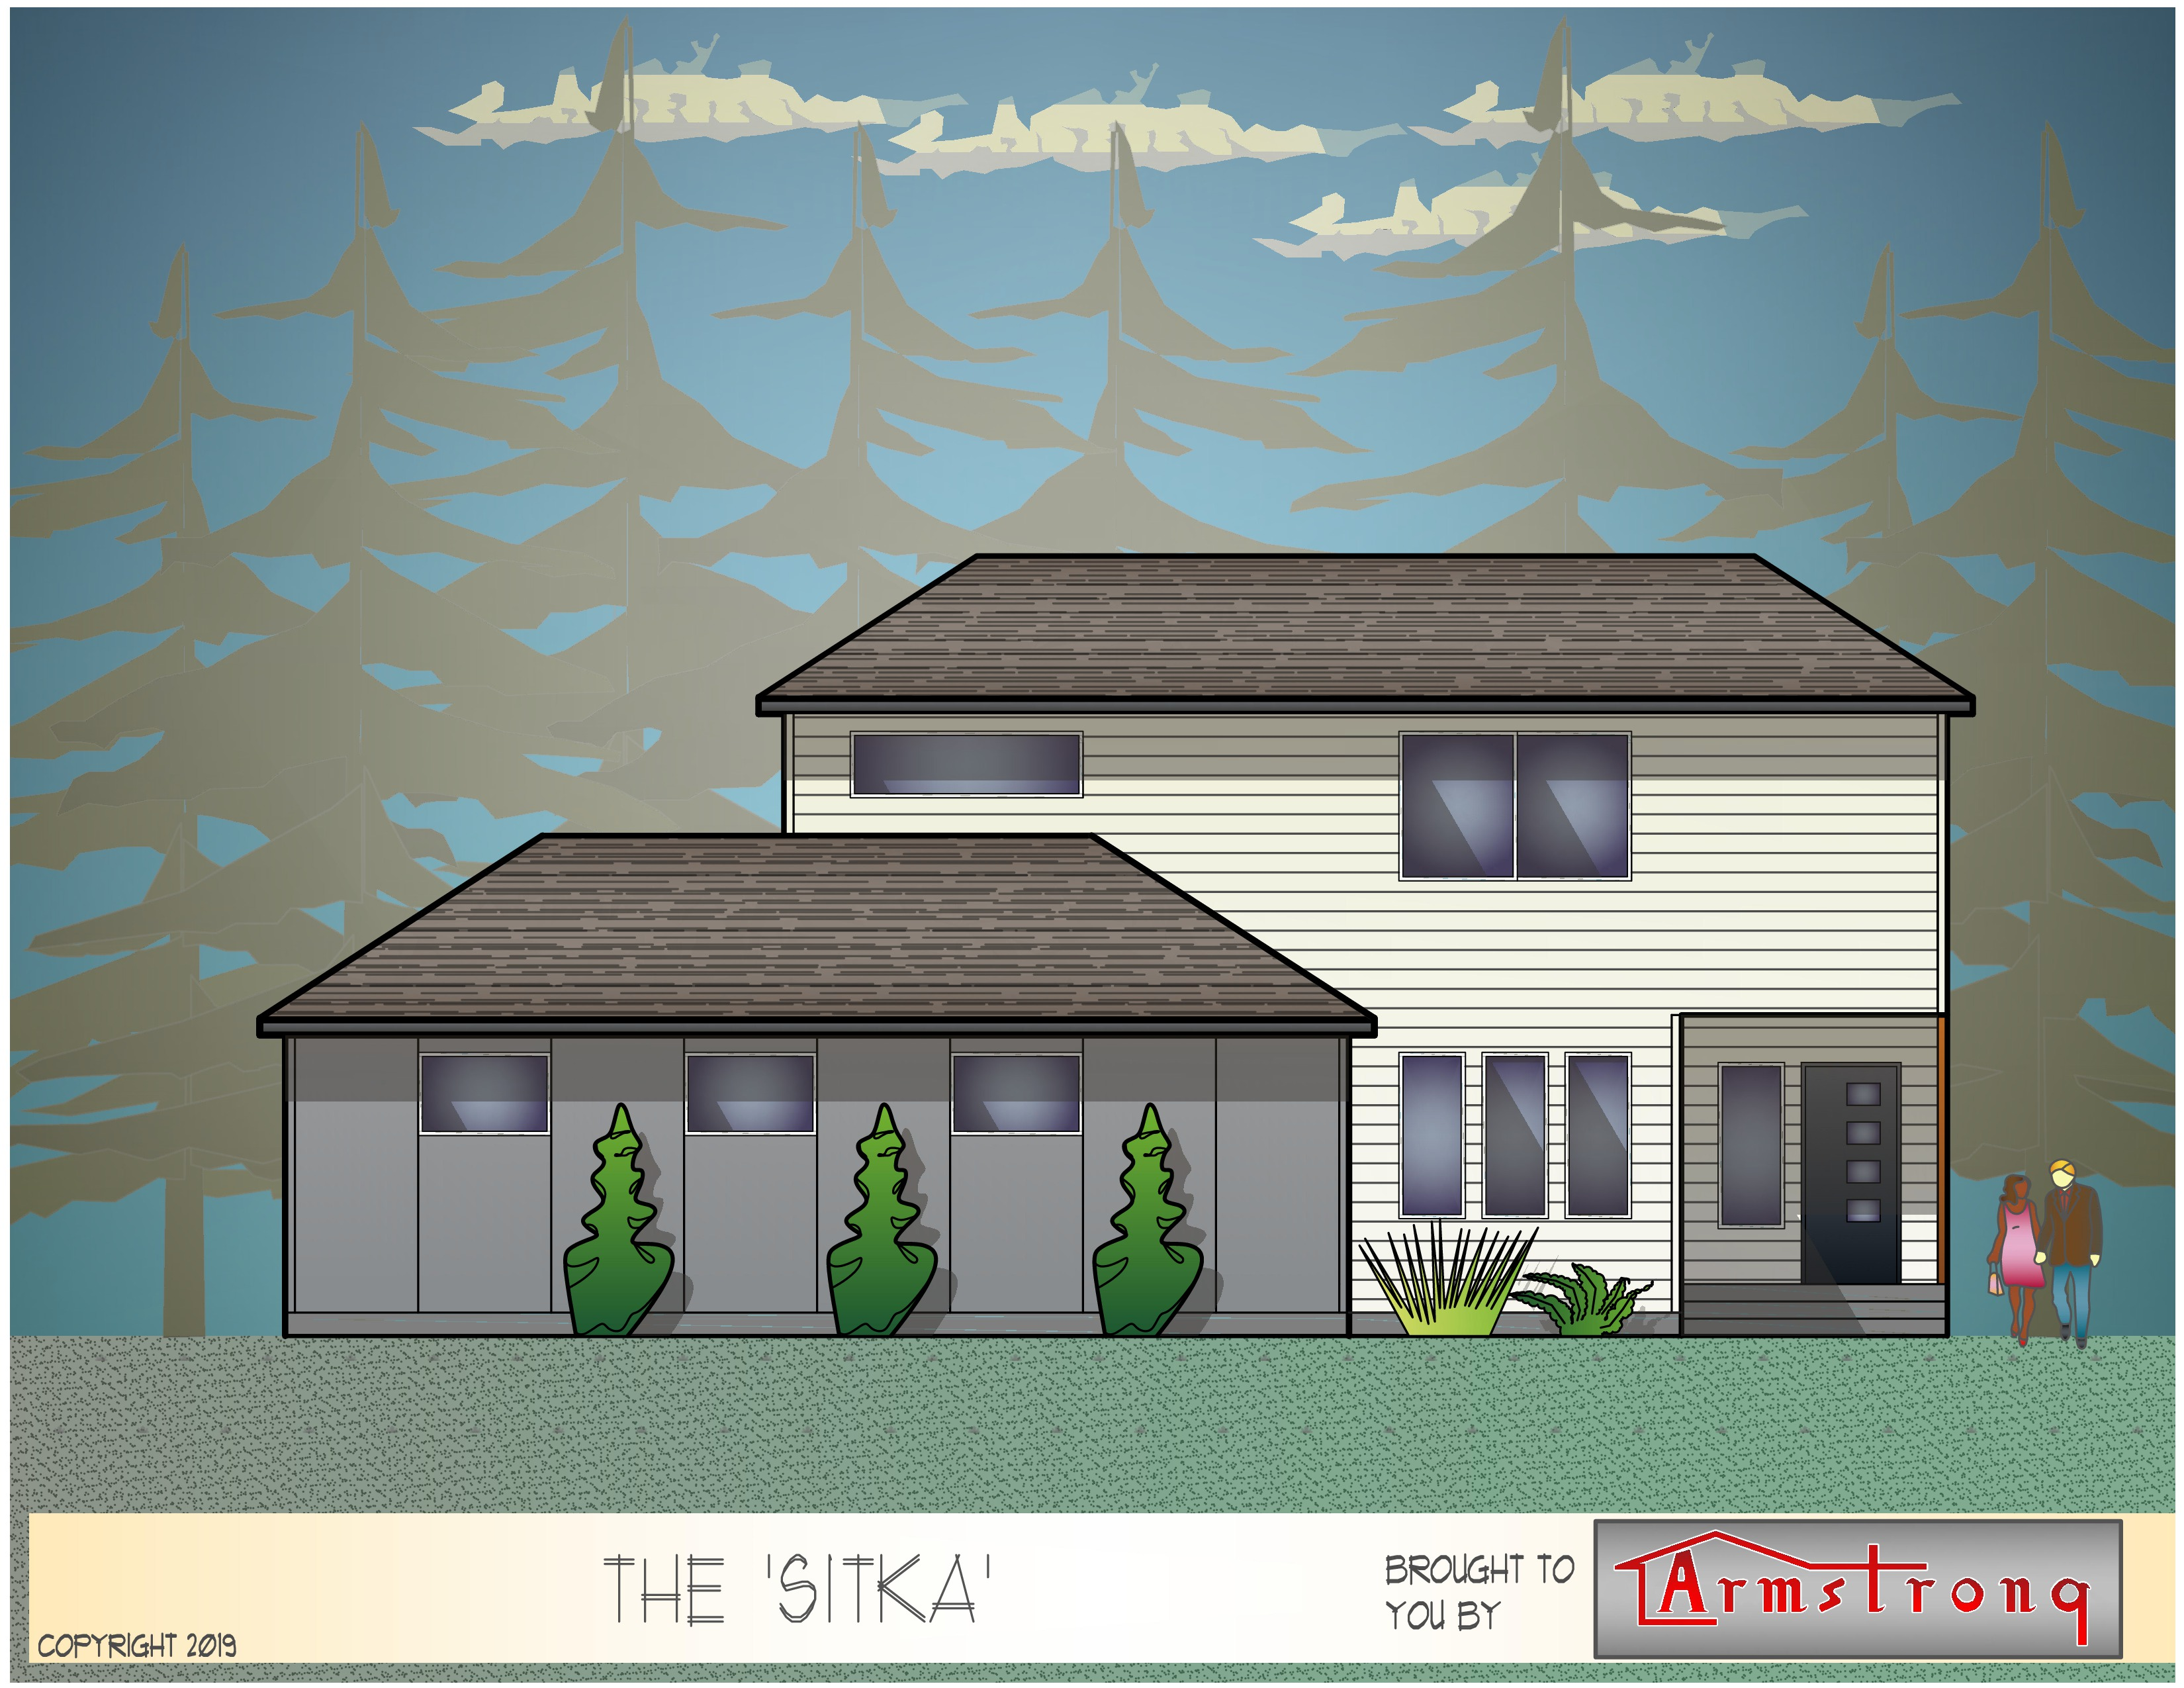 The Sitka